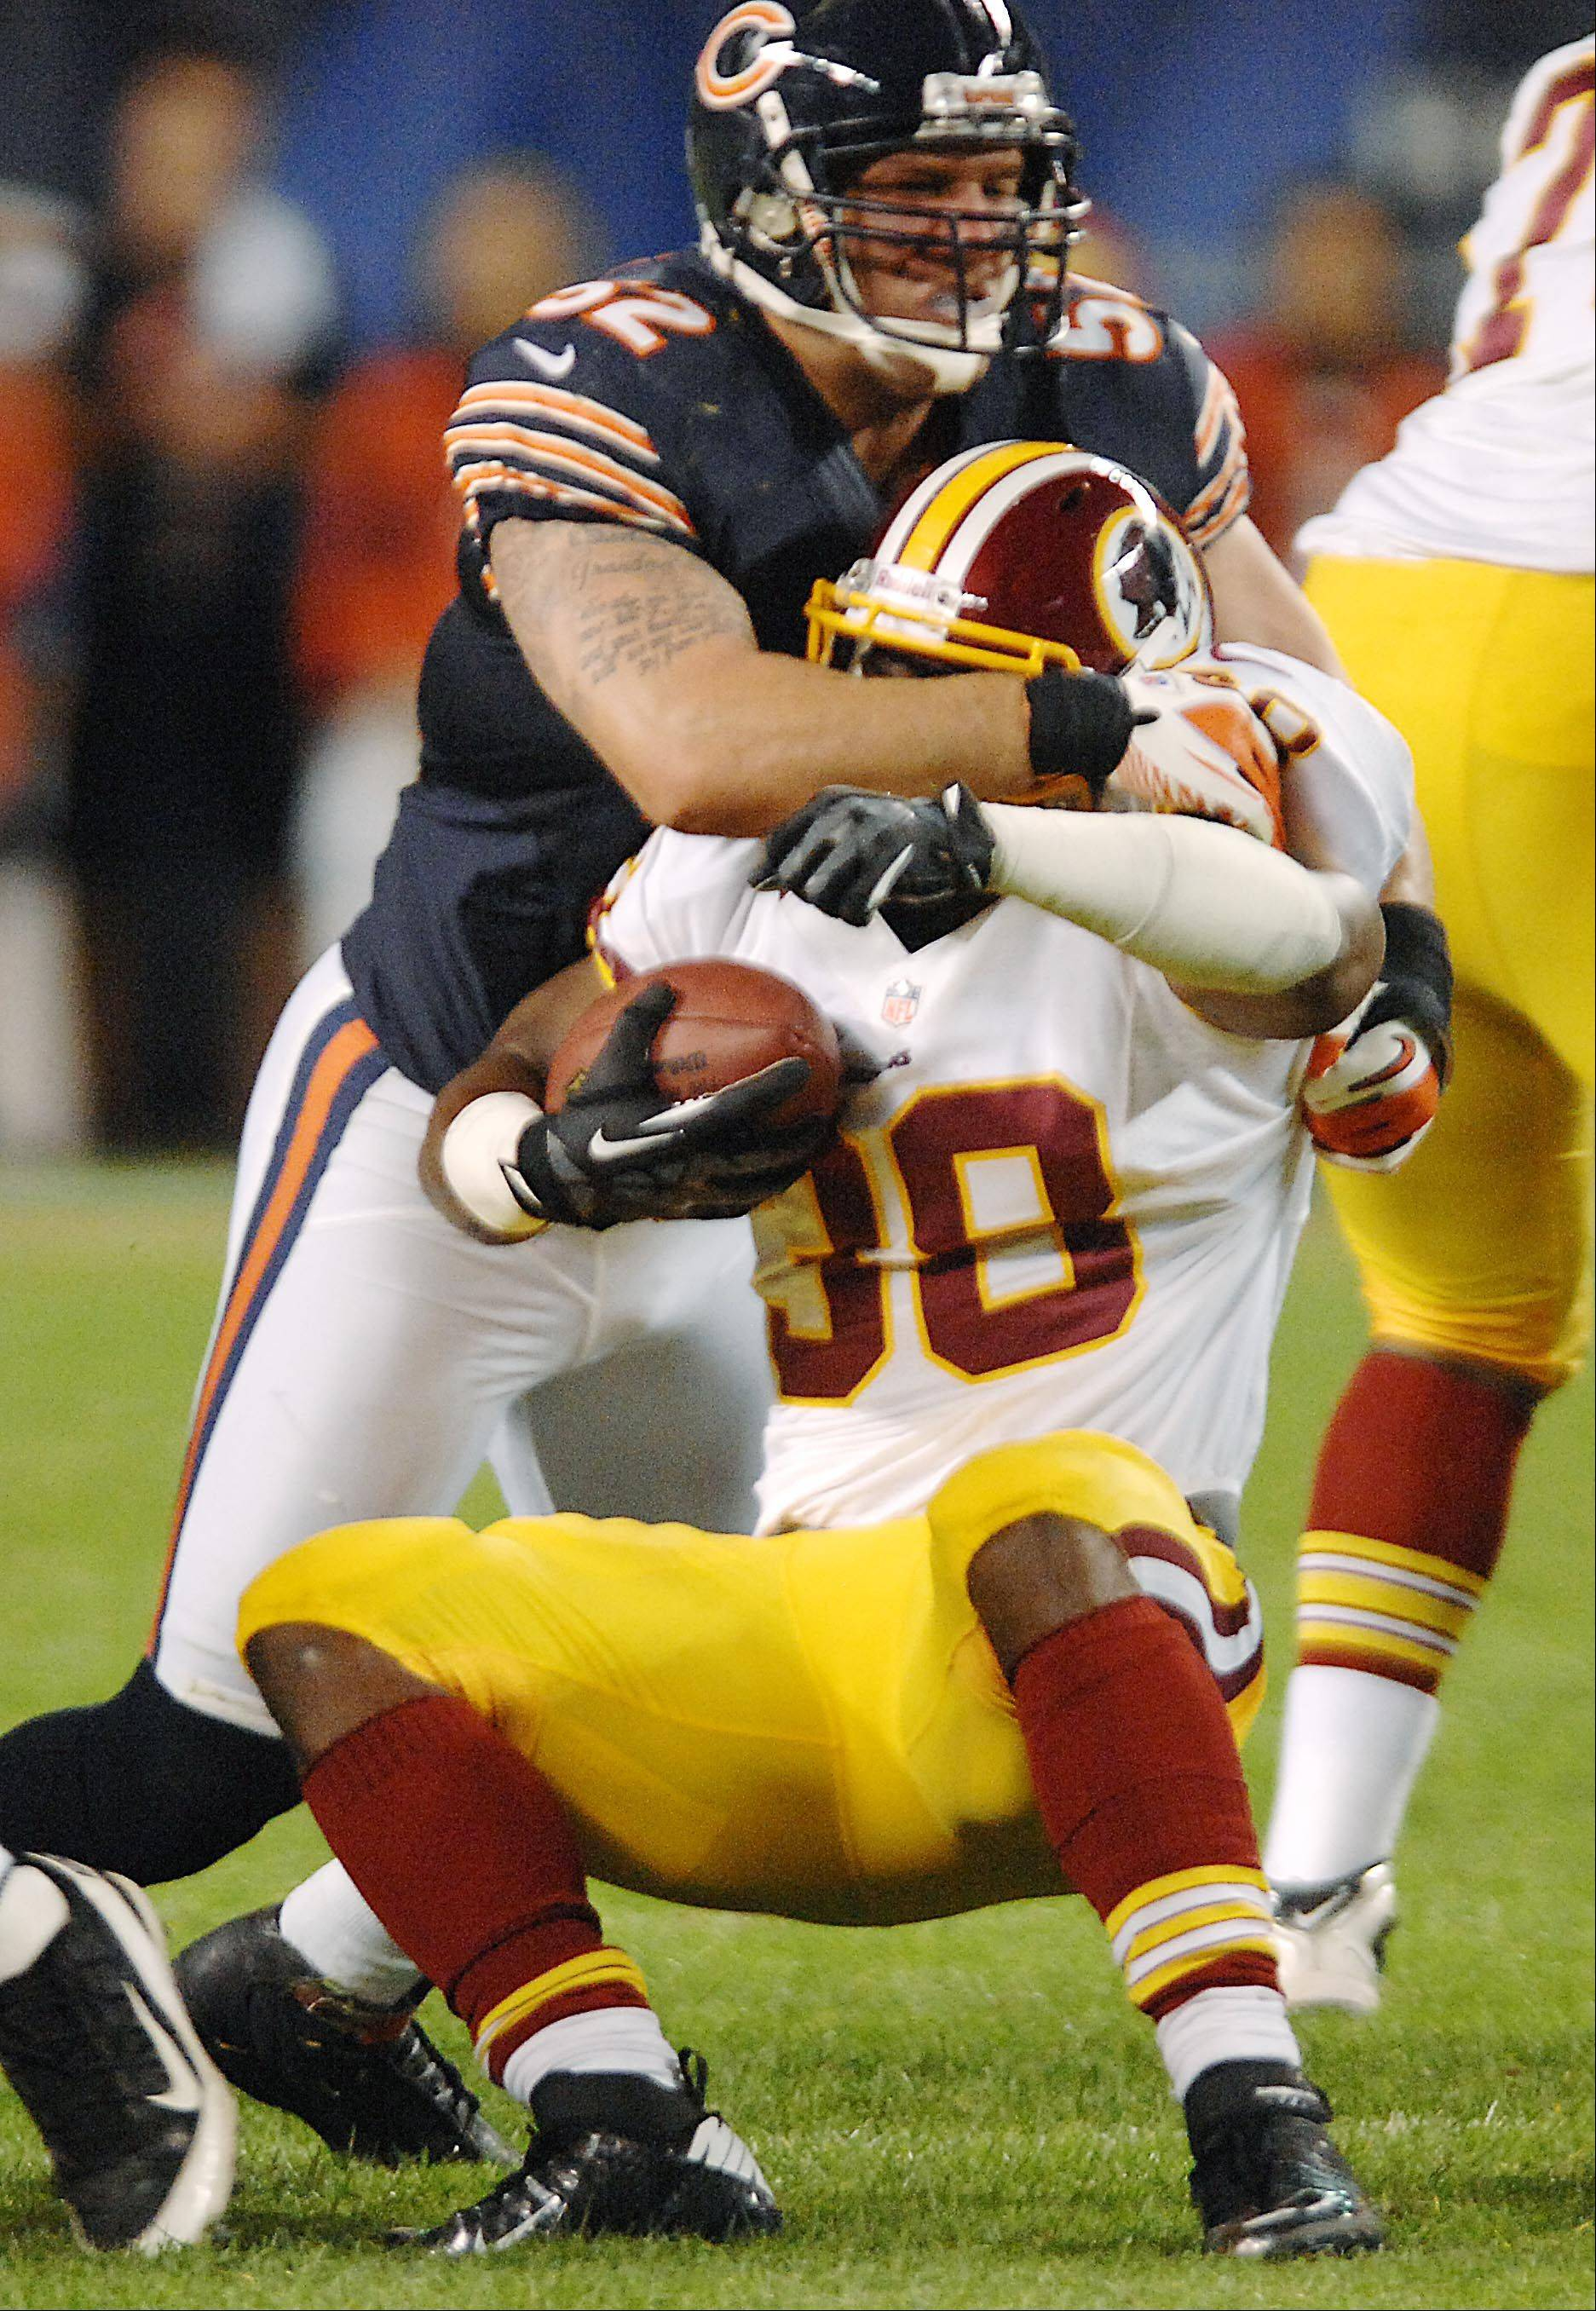 Chicago Bears linebacker Blake Costanzo stops Washington Redskins running back Tristan Davis Saturday in the second preseason game at Soldier Field in Chicago.